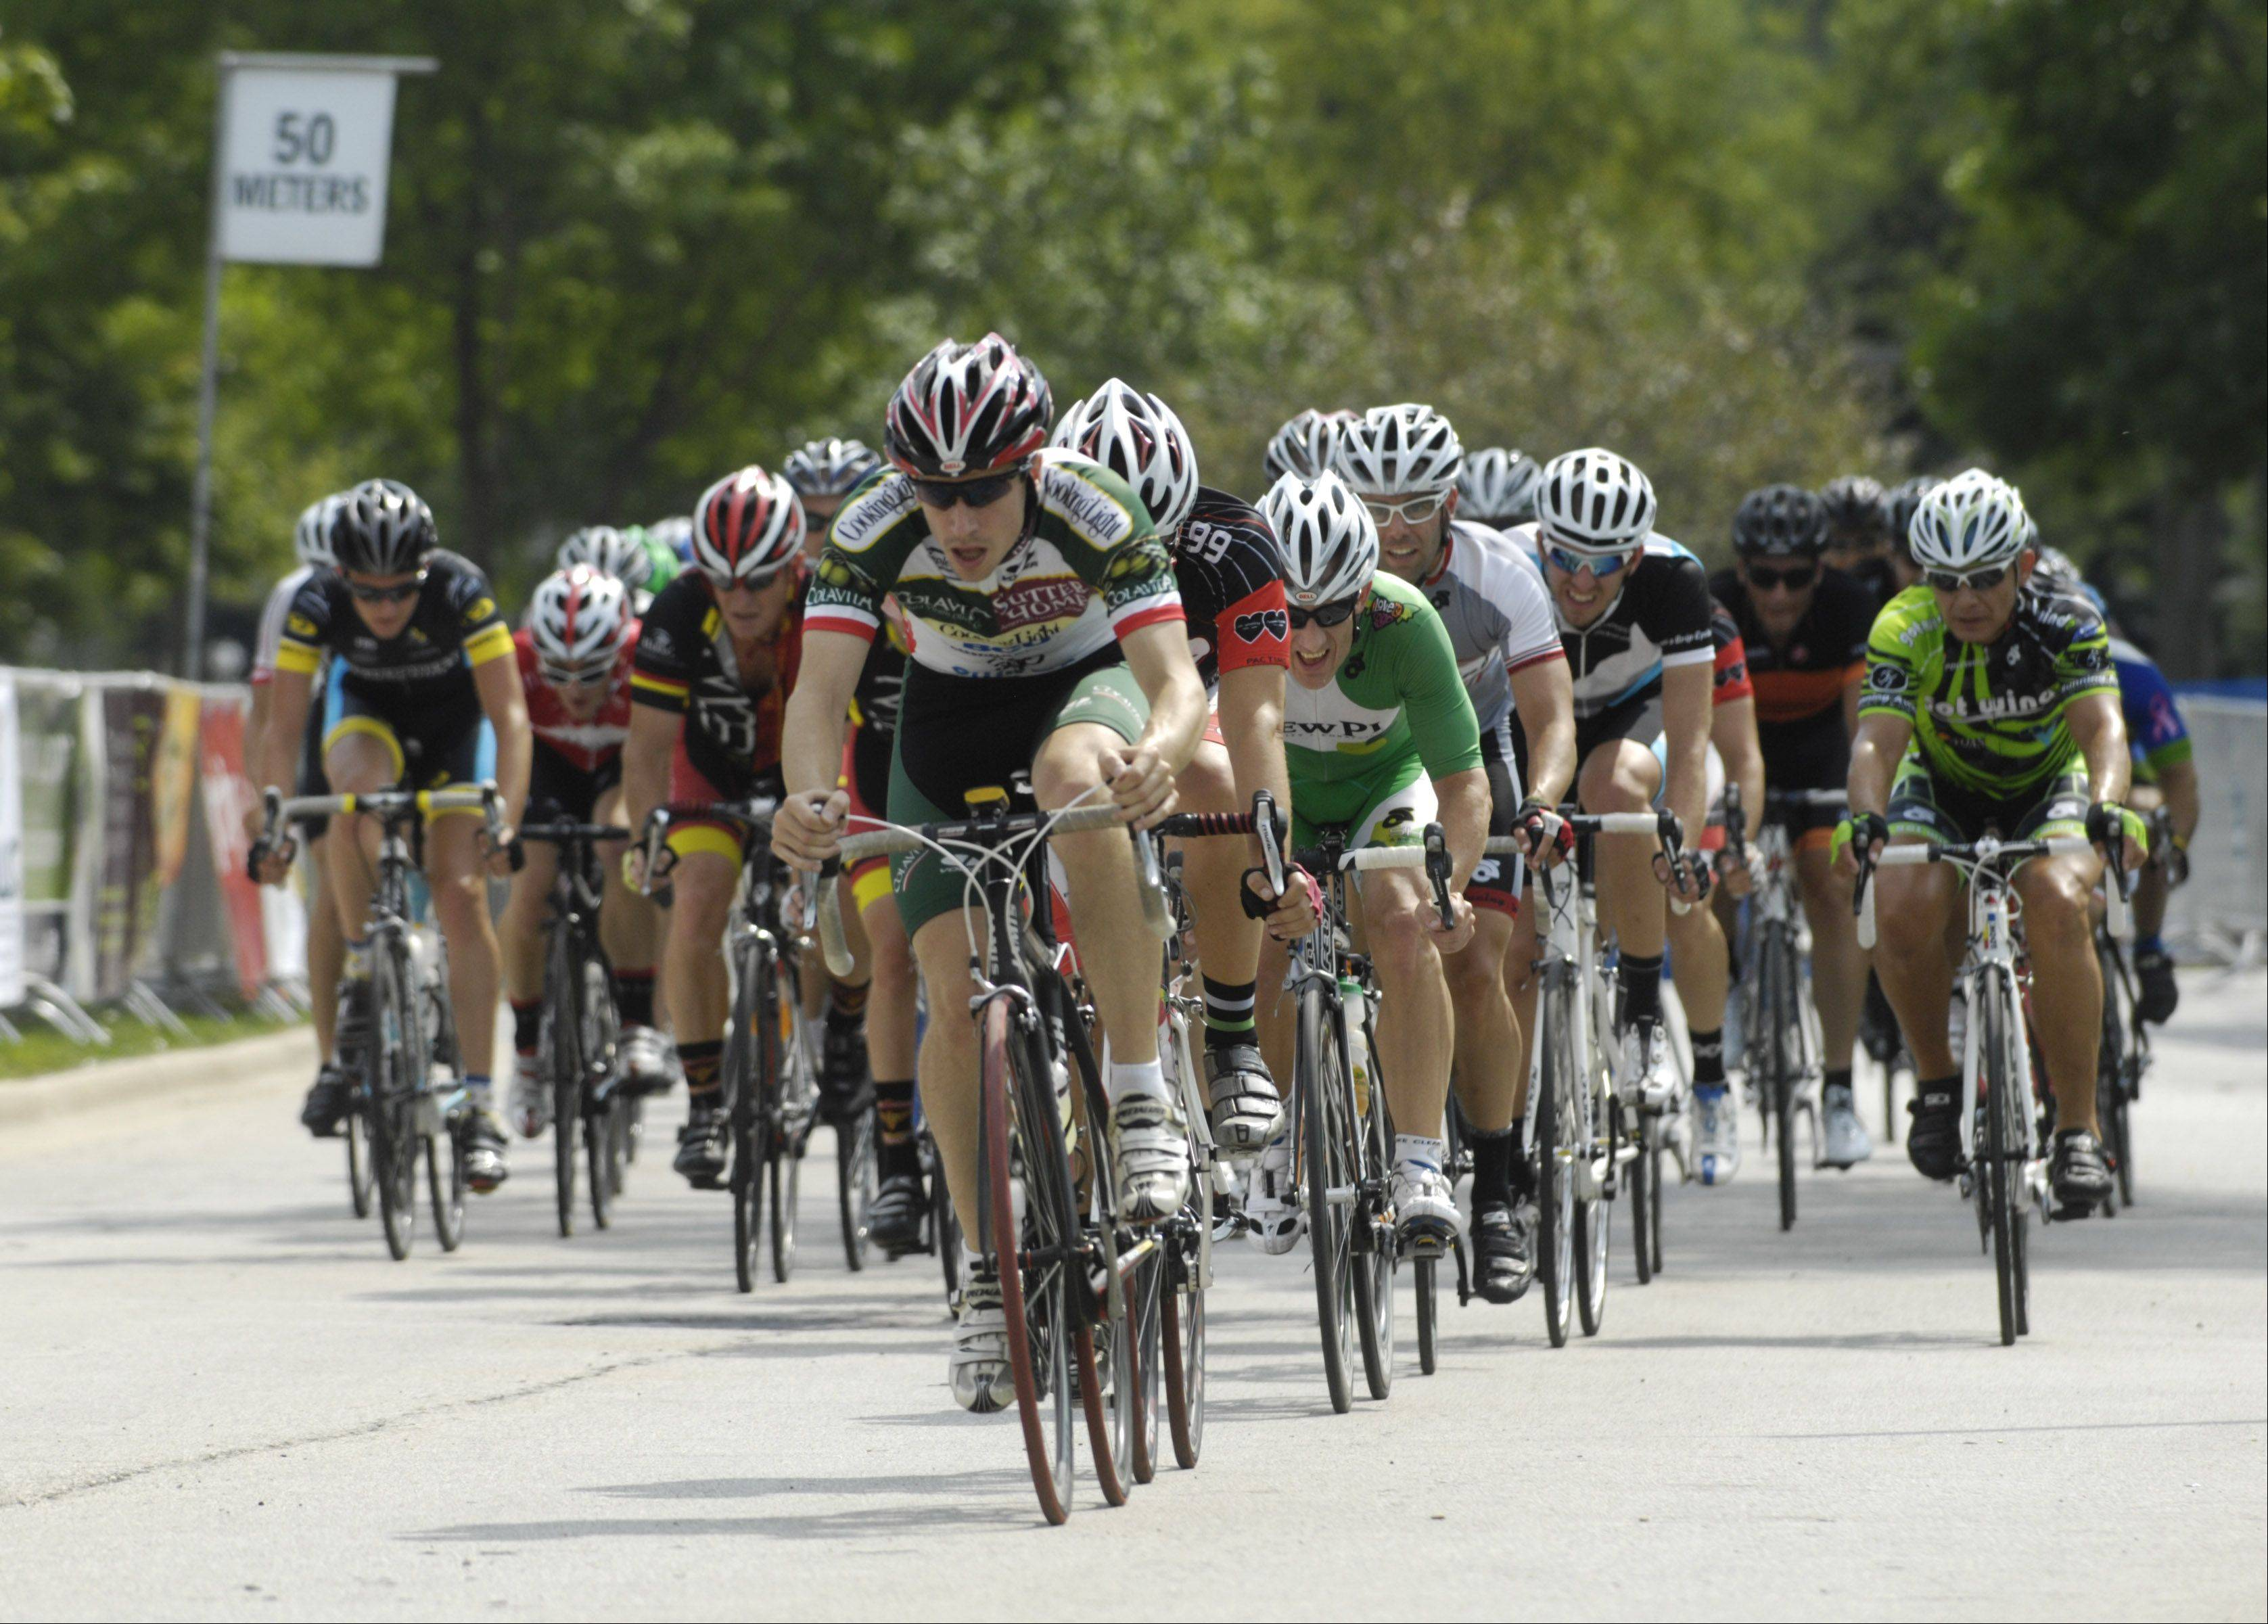 Riders compete in the Jersey Mike's Category 4 during the Tour of Elk Grove Saturday.